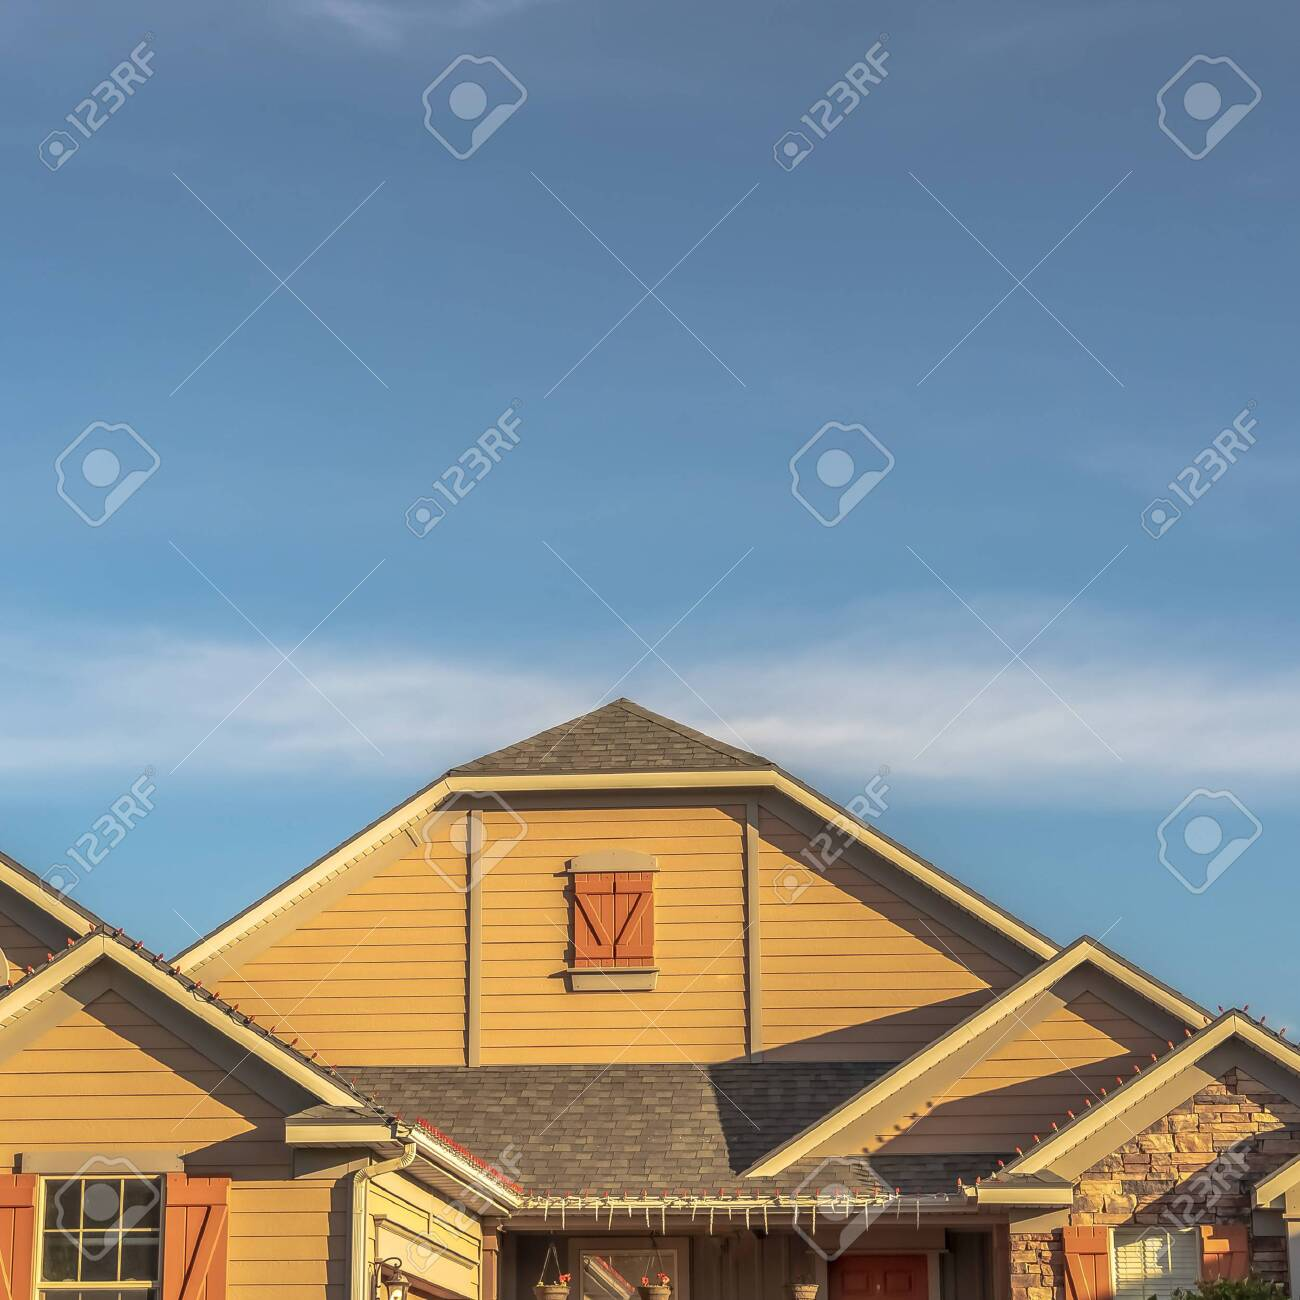 Square House Exterior With View Of The Gable Roof With Gable Stock Photo Picture And Royalty Free Image Image 137234727